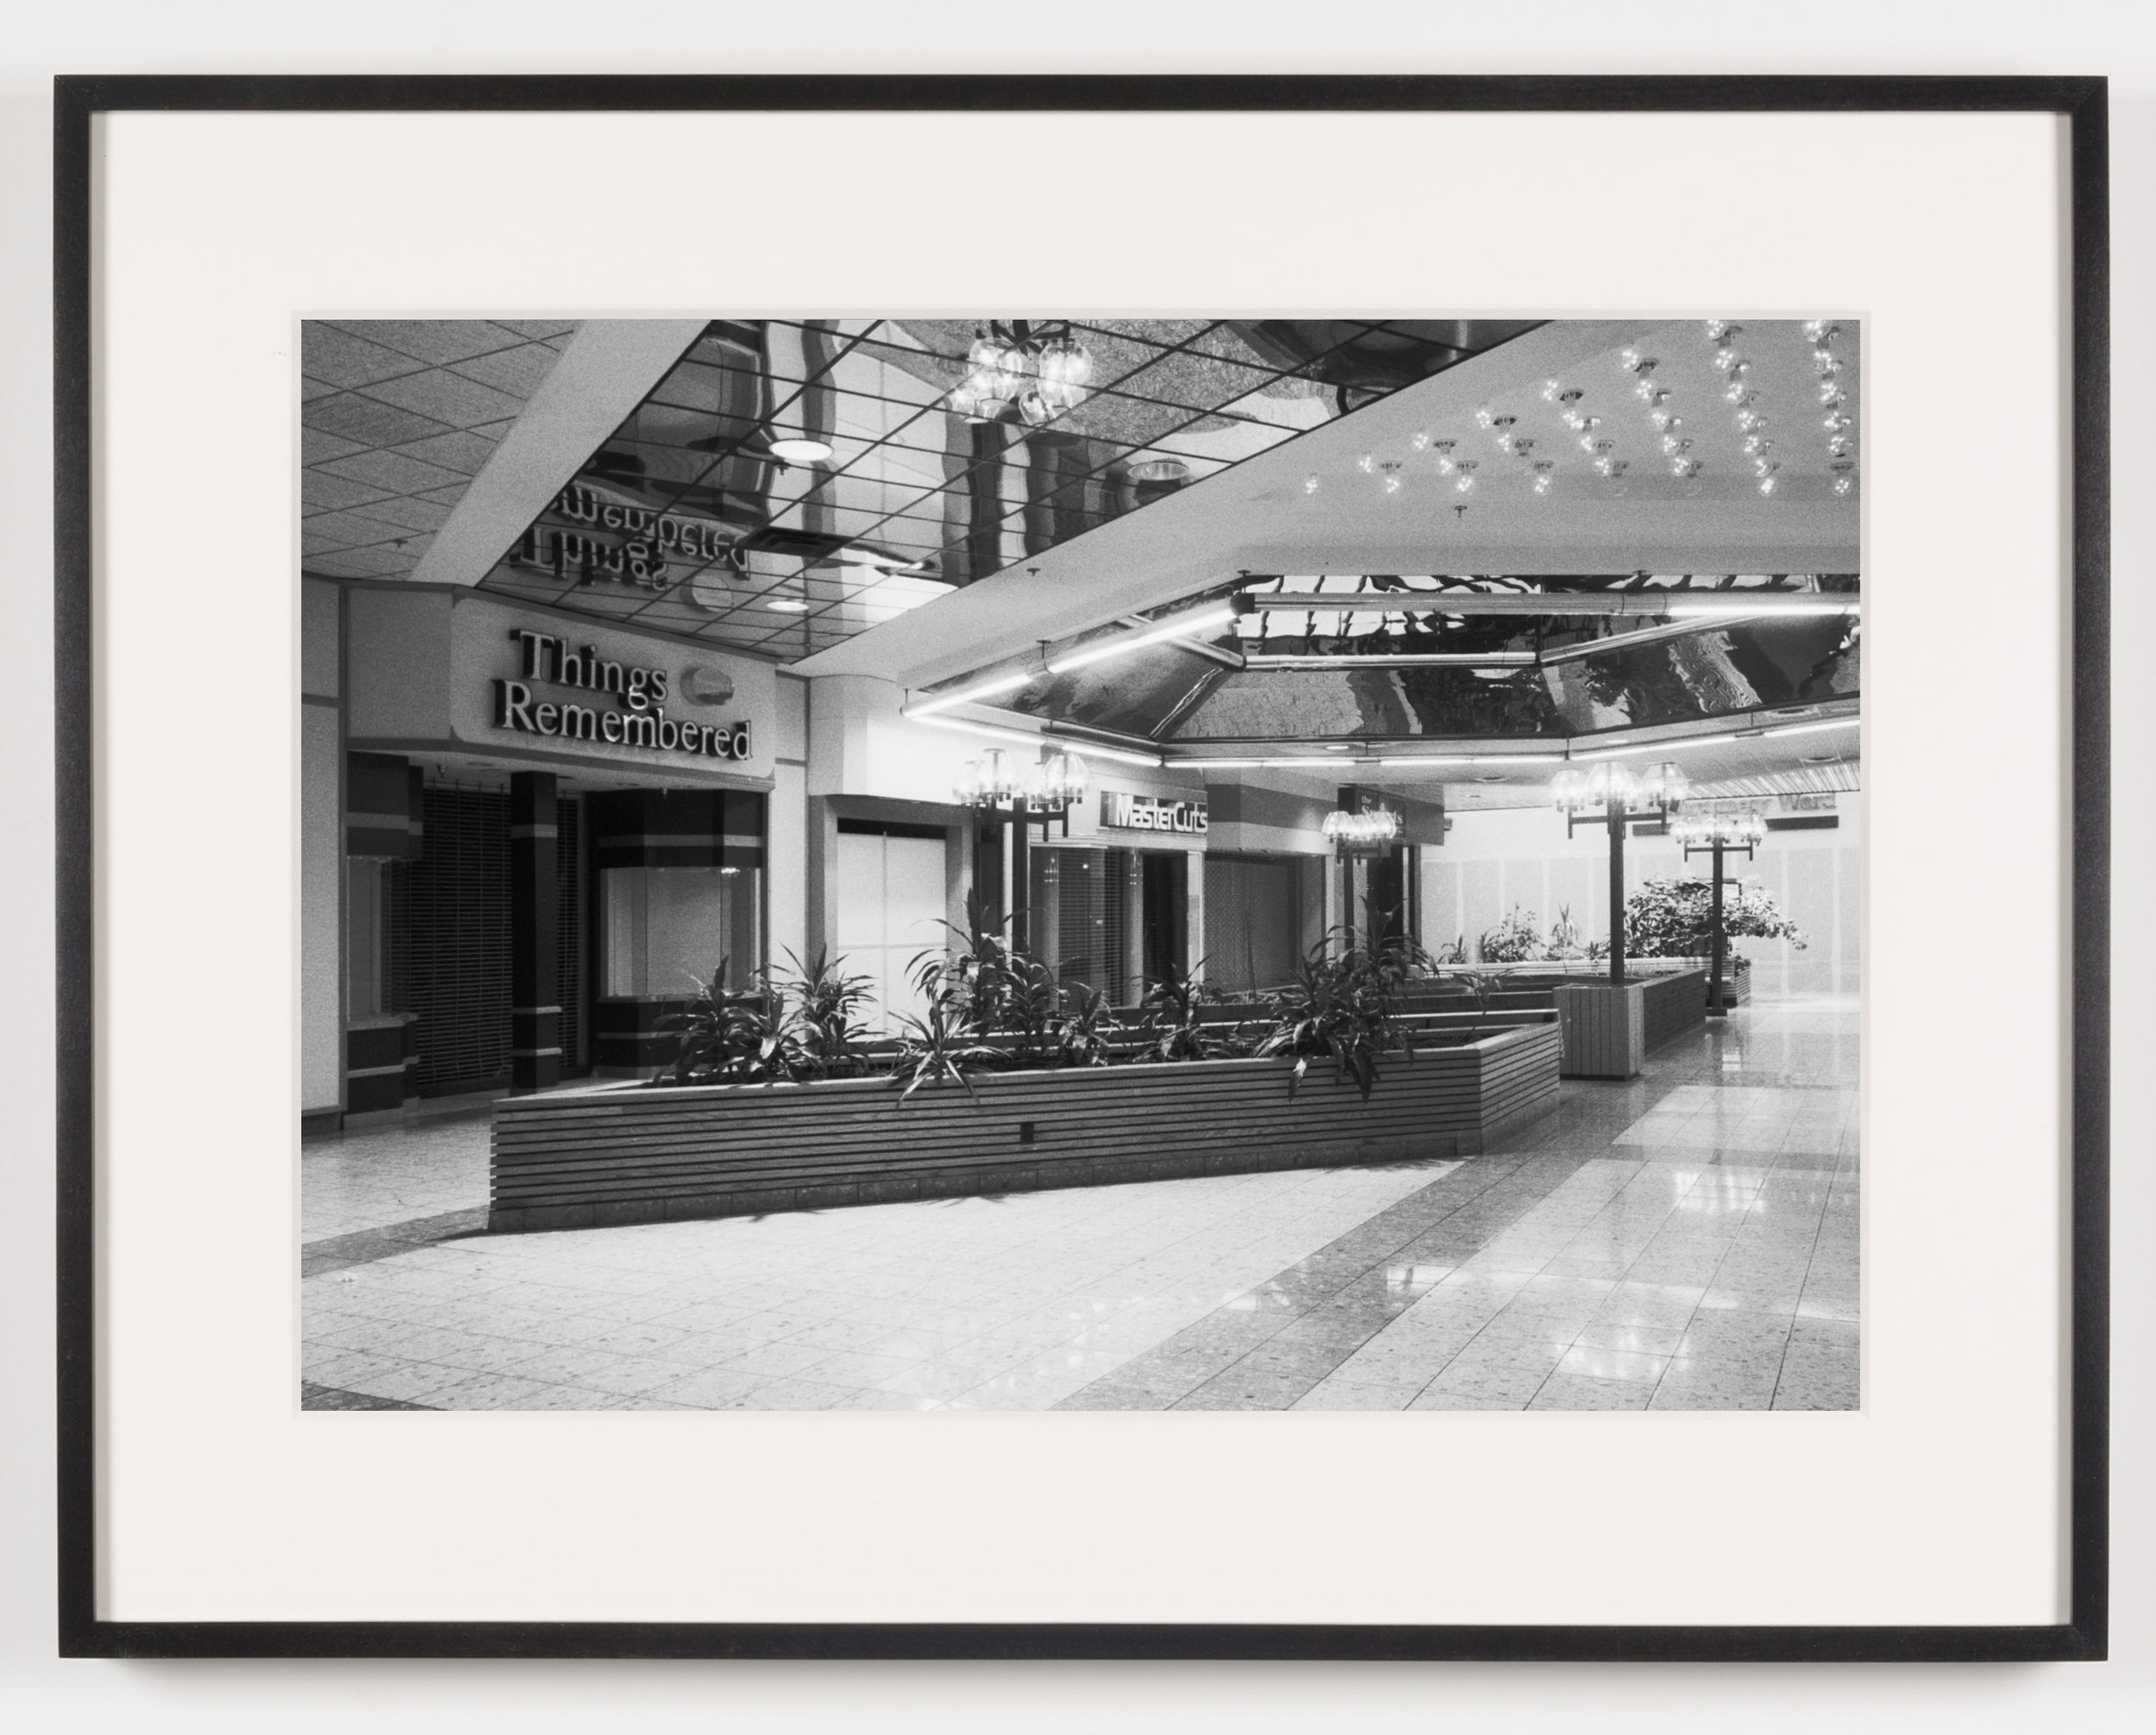 Southwyck Mall, Toledo, OH, Est 1972, Demo 2008    2011   Epson Ultrachrome K3 archival ink jet print on Hahnemühle Photo Rag paper  21 5/8 x 28 1/8 inches   A Diagram of Forces, 2011